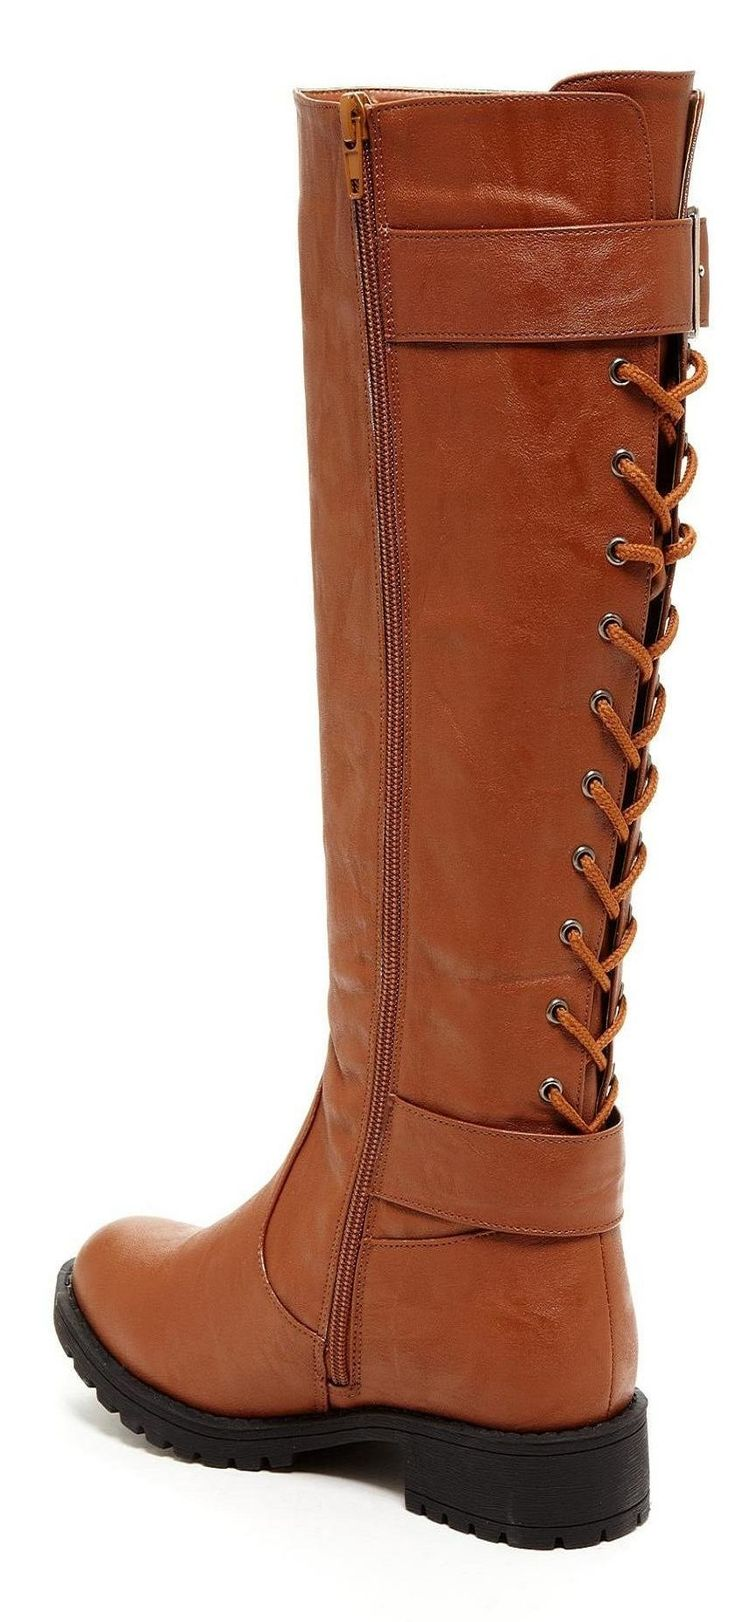 Bucco lace up back riding boot accessories shoe fetish boots